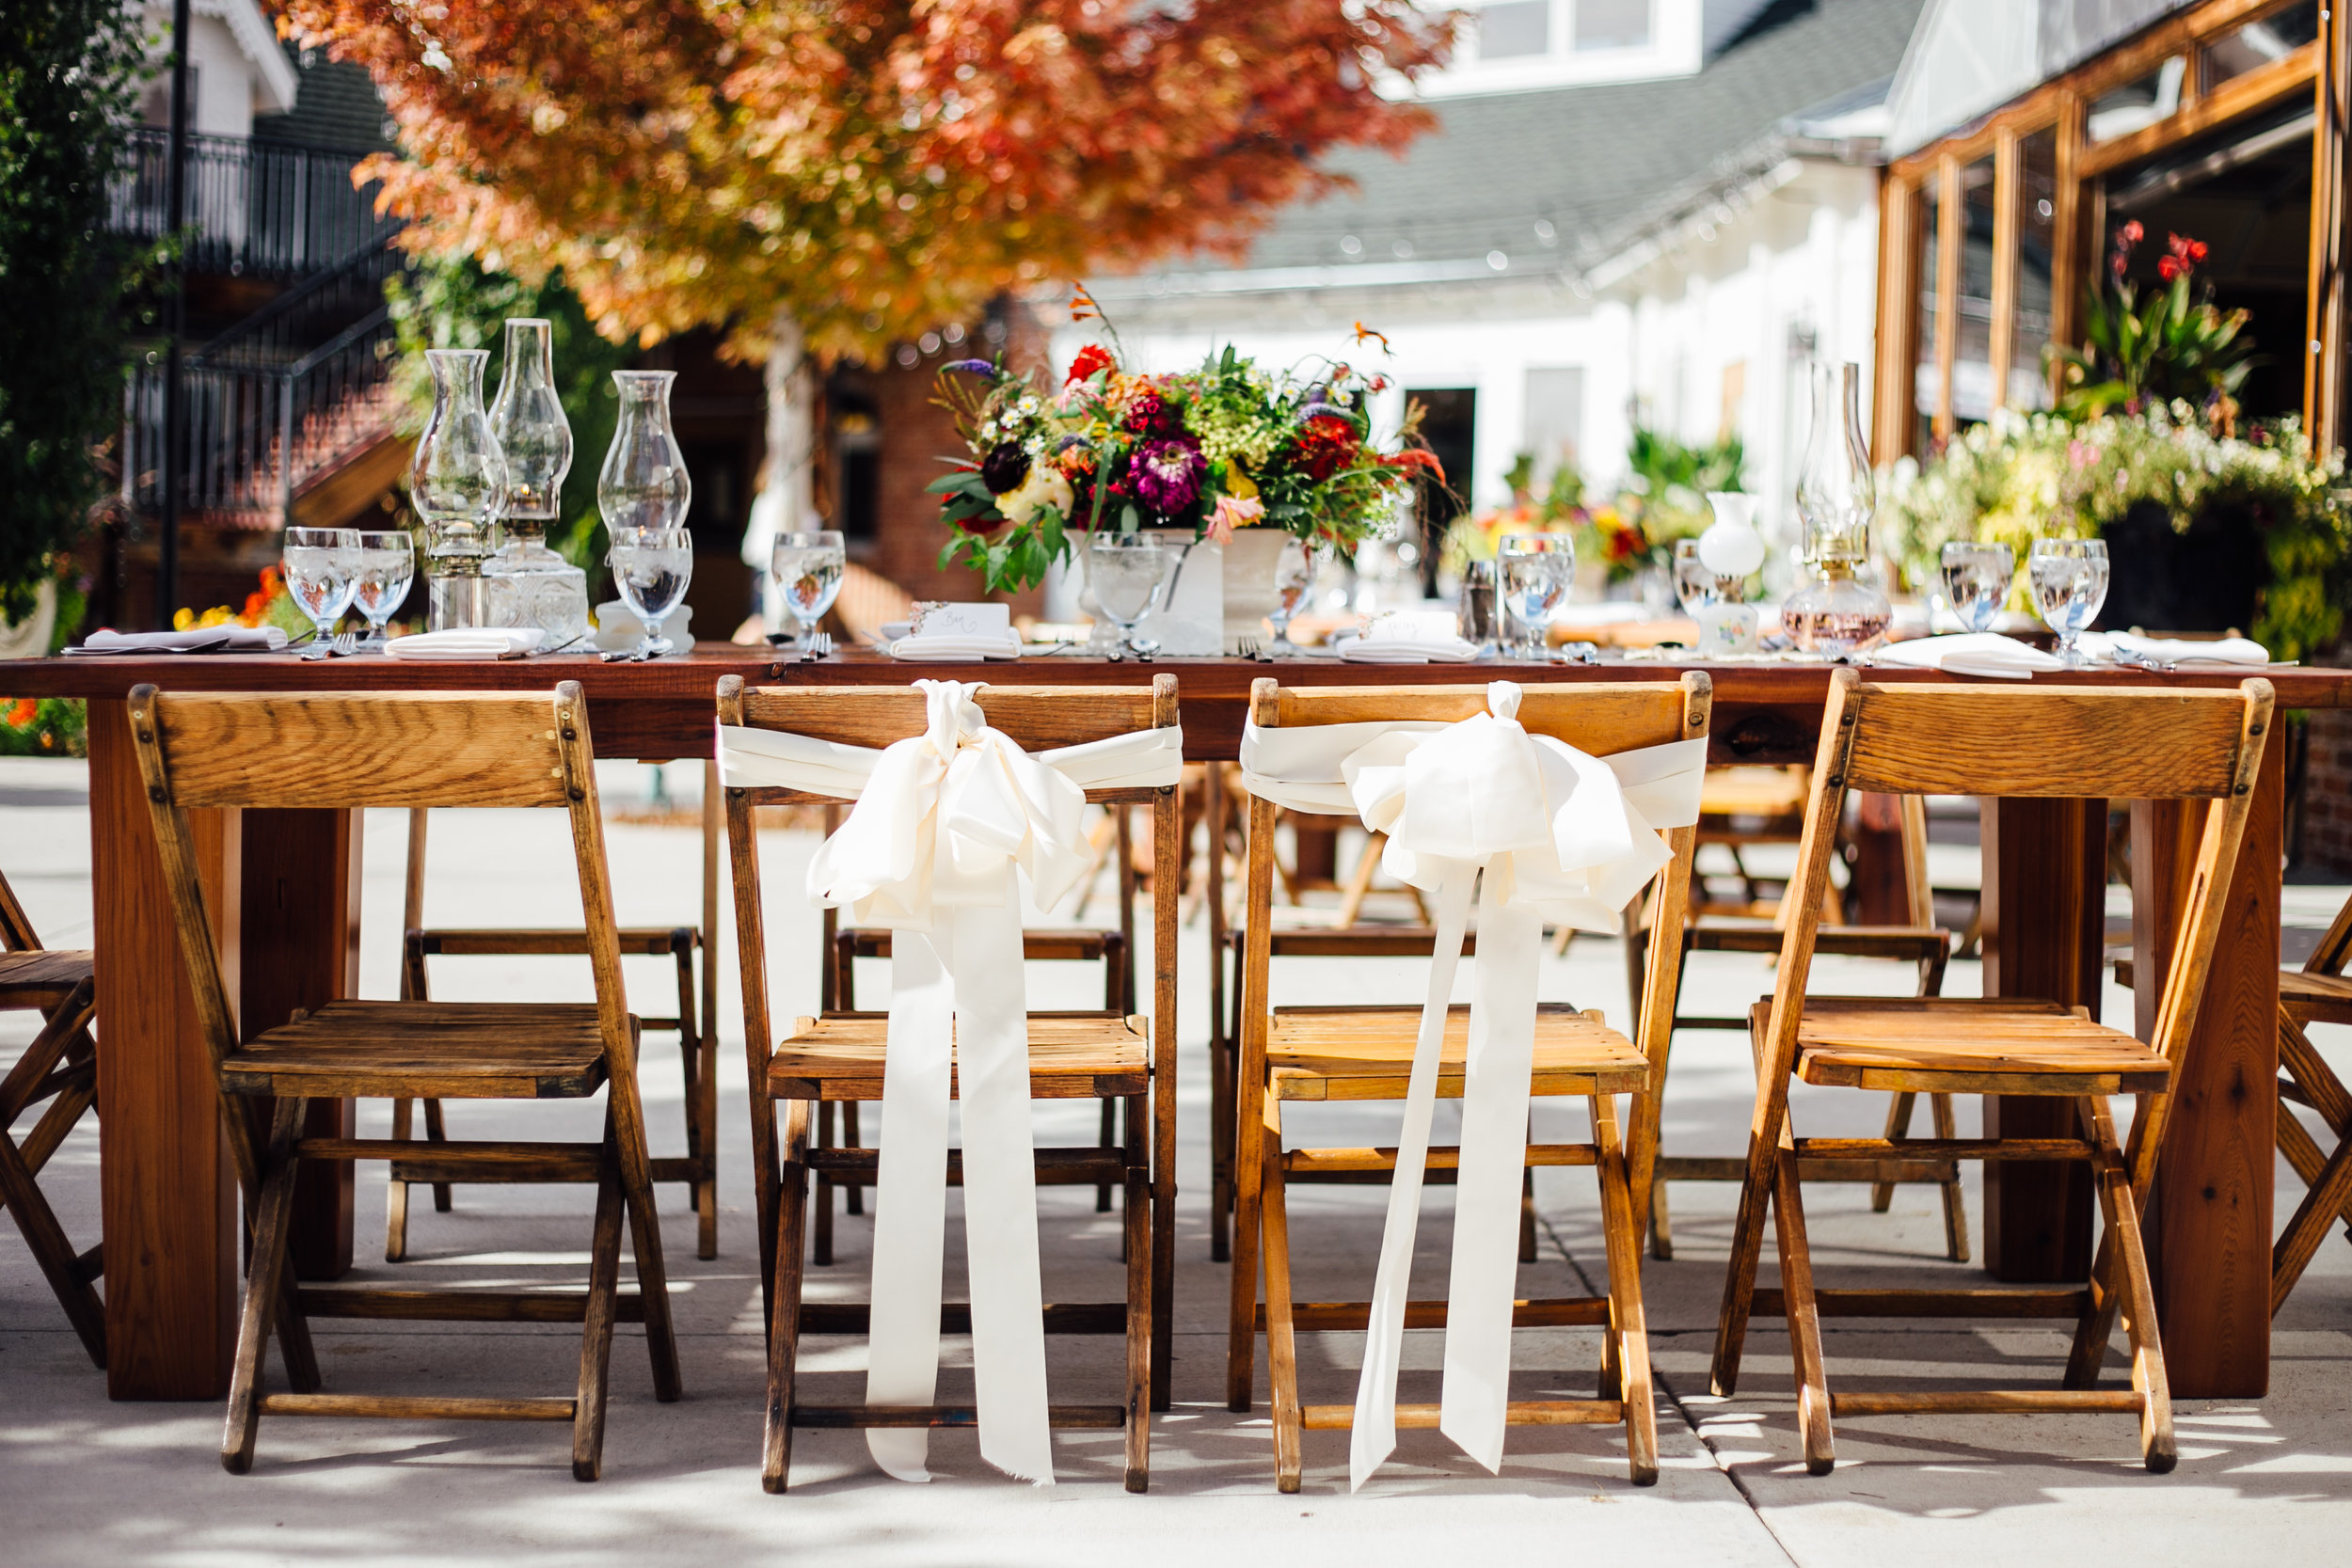 Wedding Reception Flower Centerpieces and Oil Lamp Centerpieces Reception Brookside Gardens Berthoud Colorado Wedding